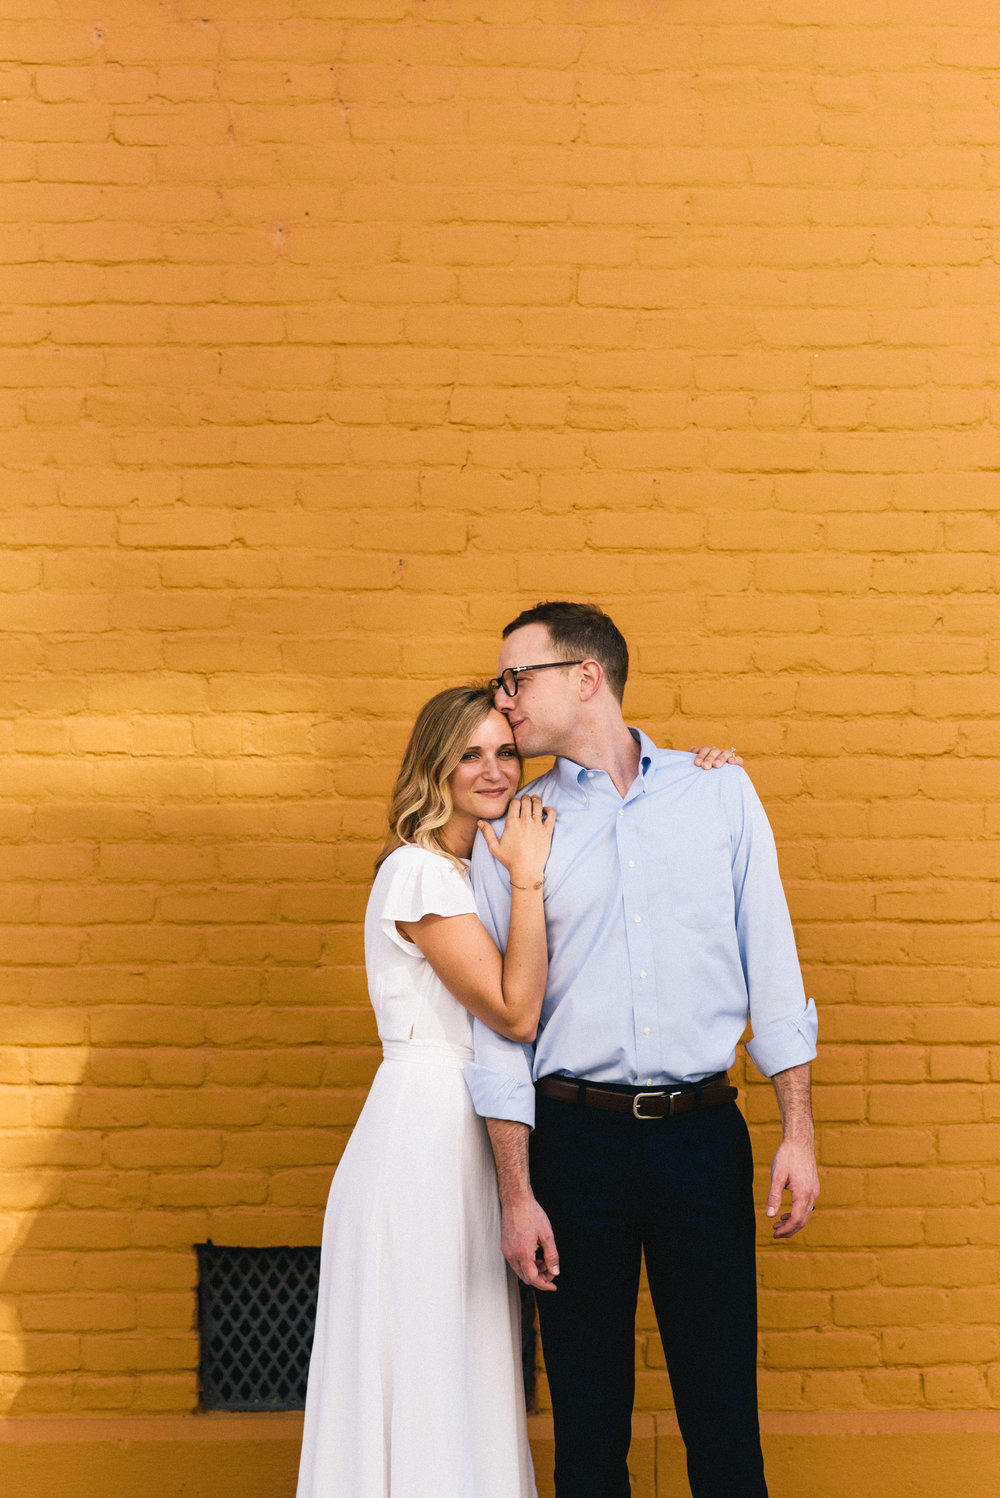 taryn-and-jackson-engagement-save-the-date (53 of 219).jpg